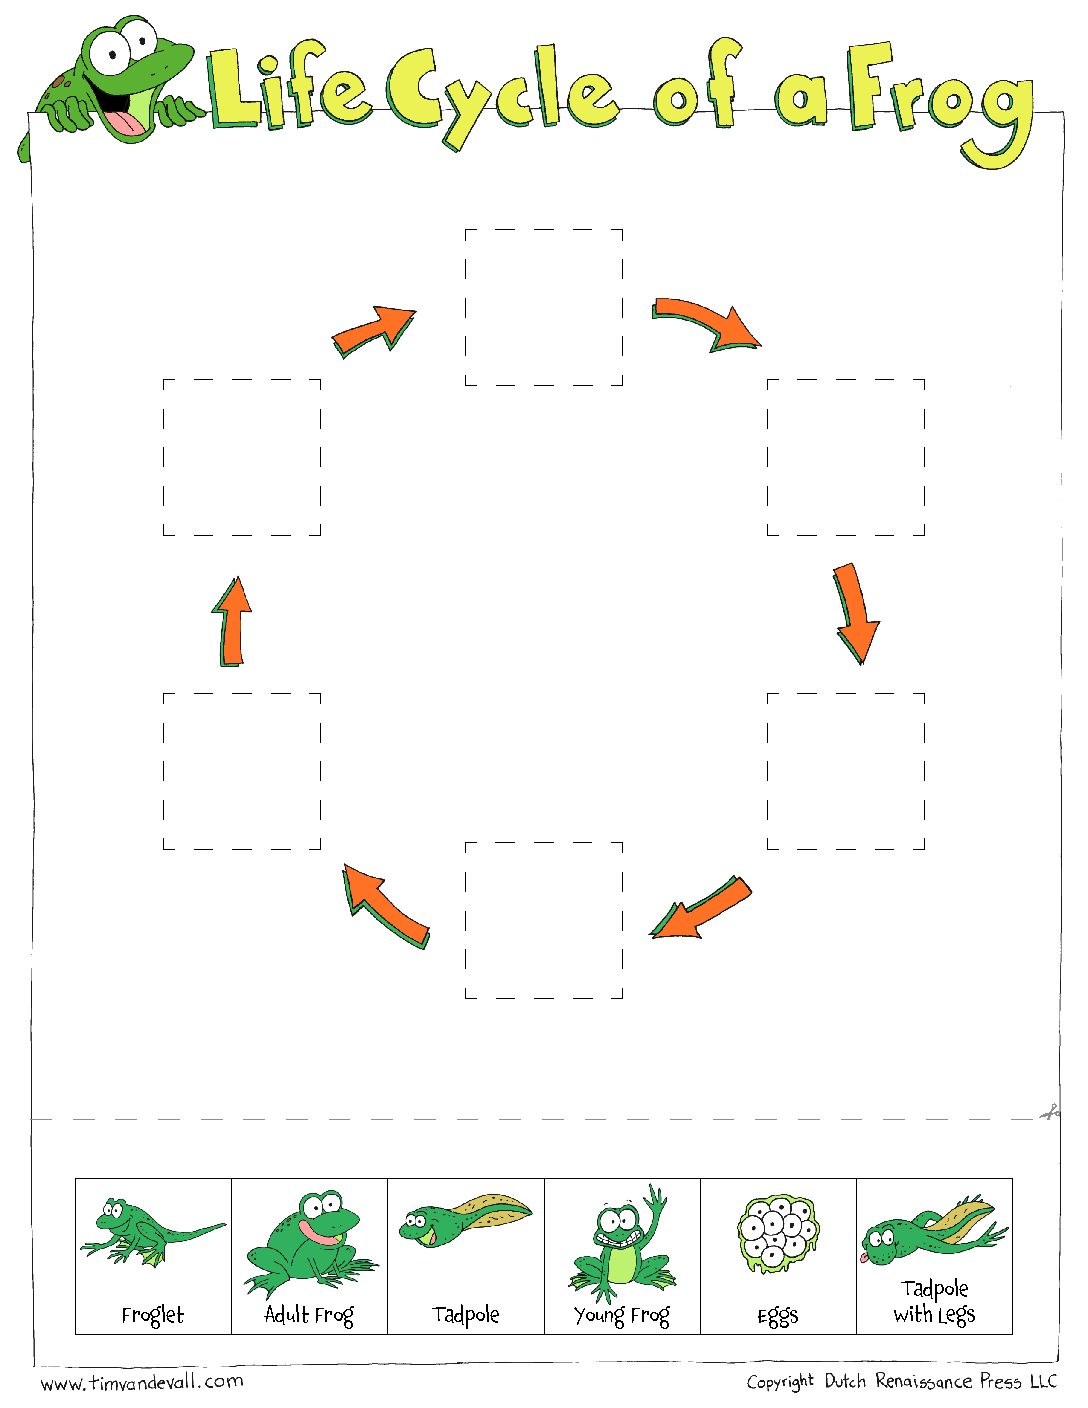 Tadpole Stages Worksheet